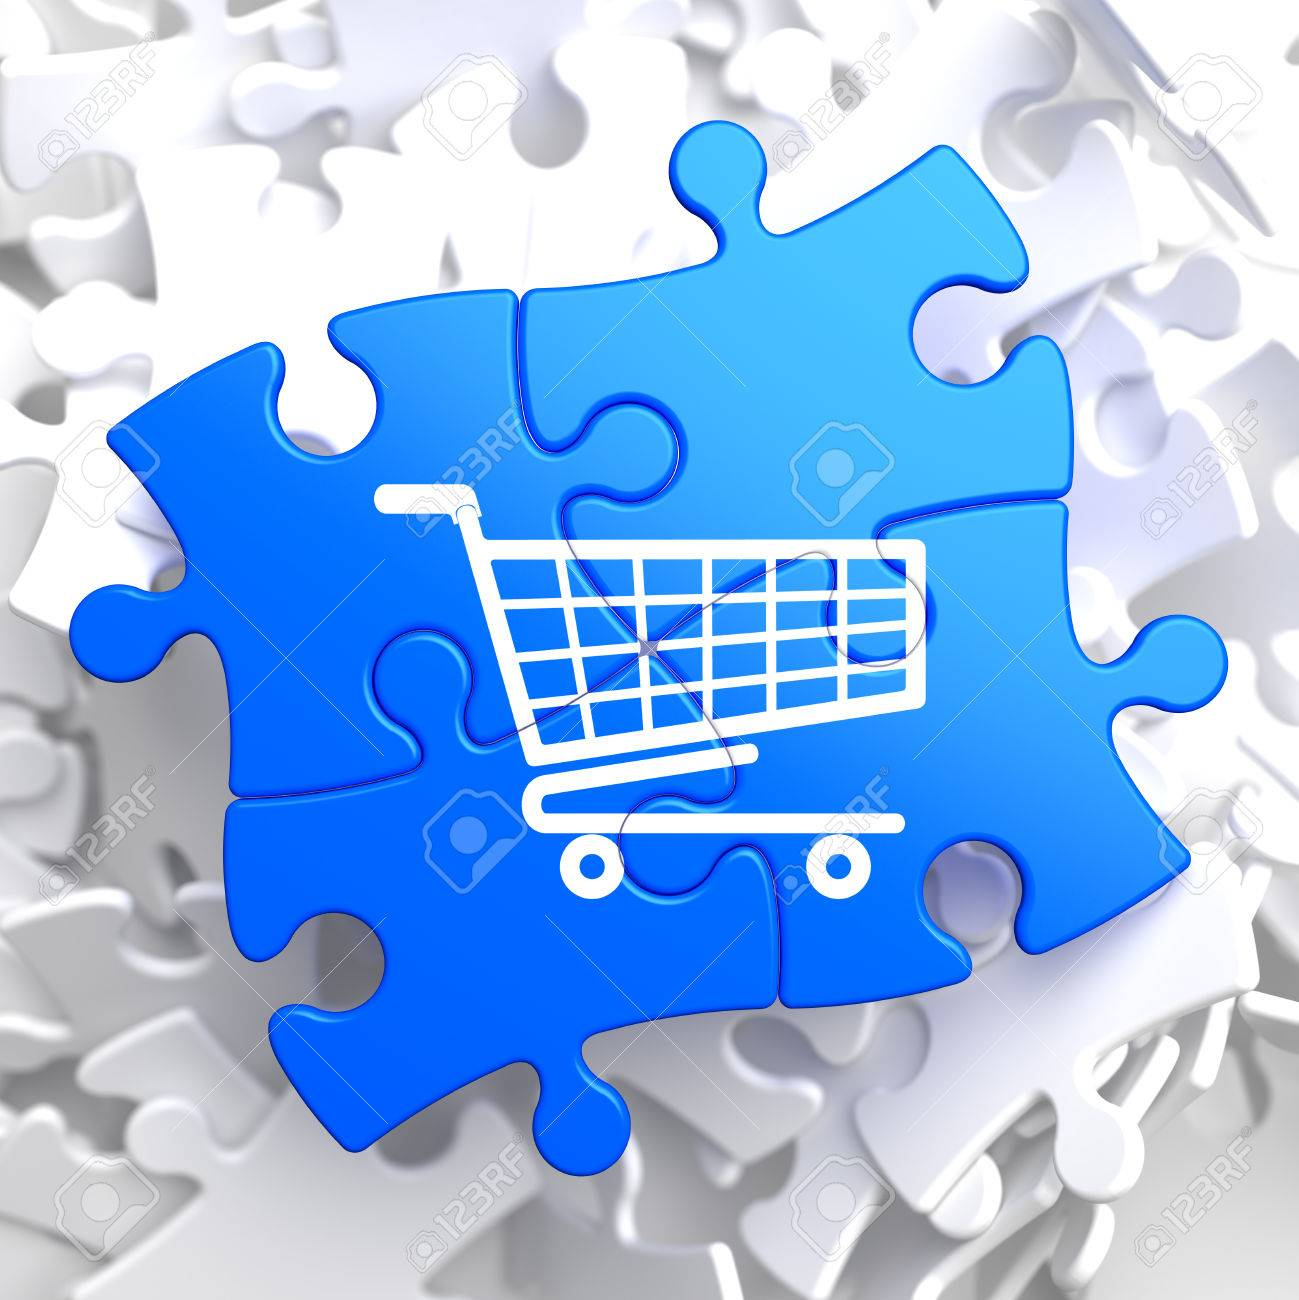 Icon of Shopping Cart on Blue Puzzle. Stock Photo - 23459197